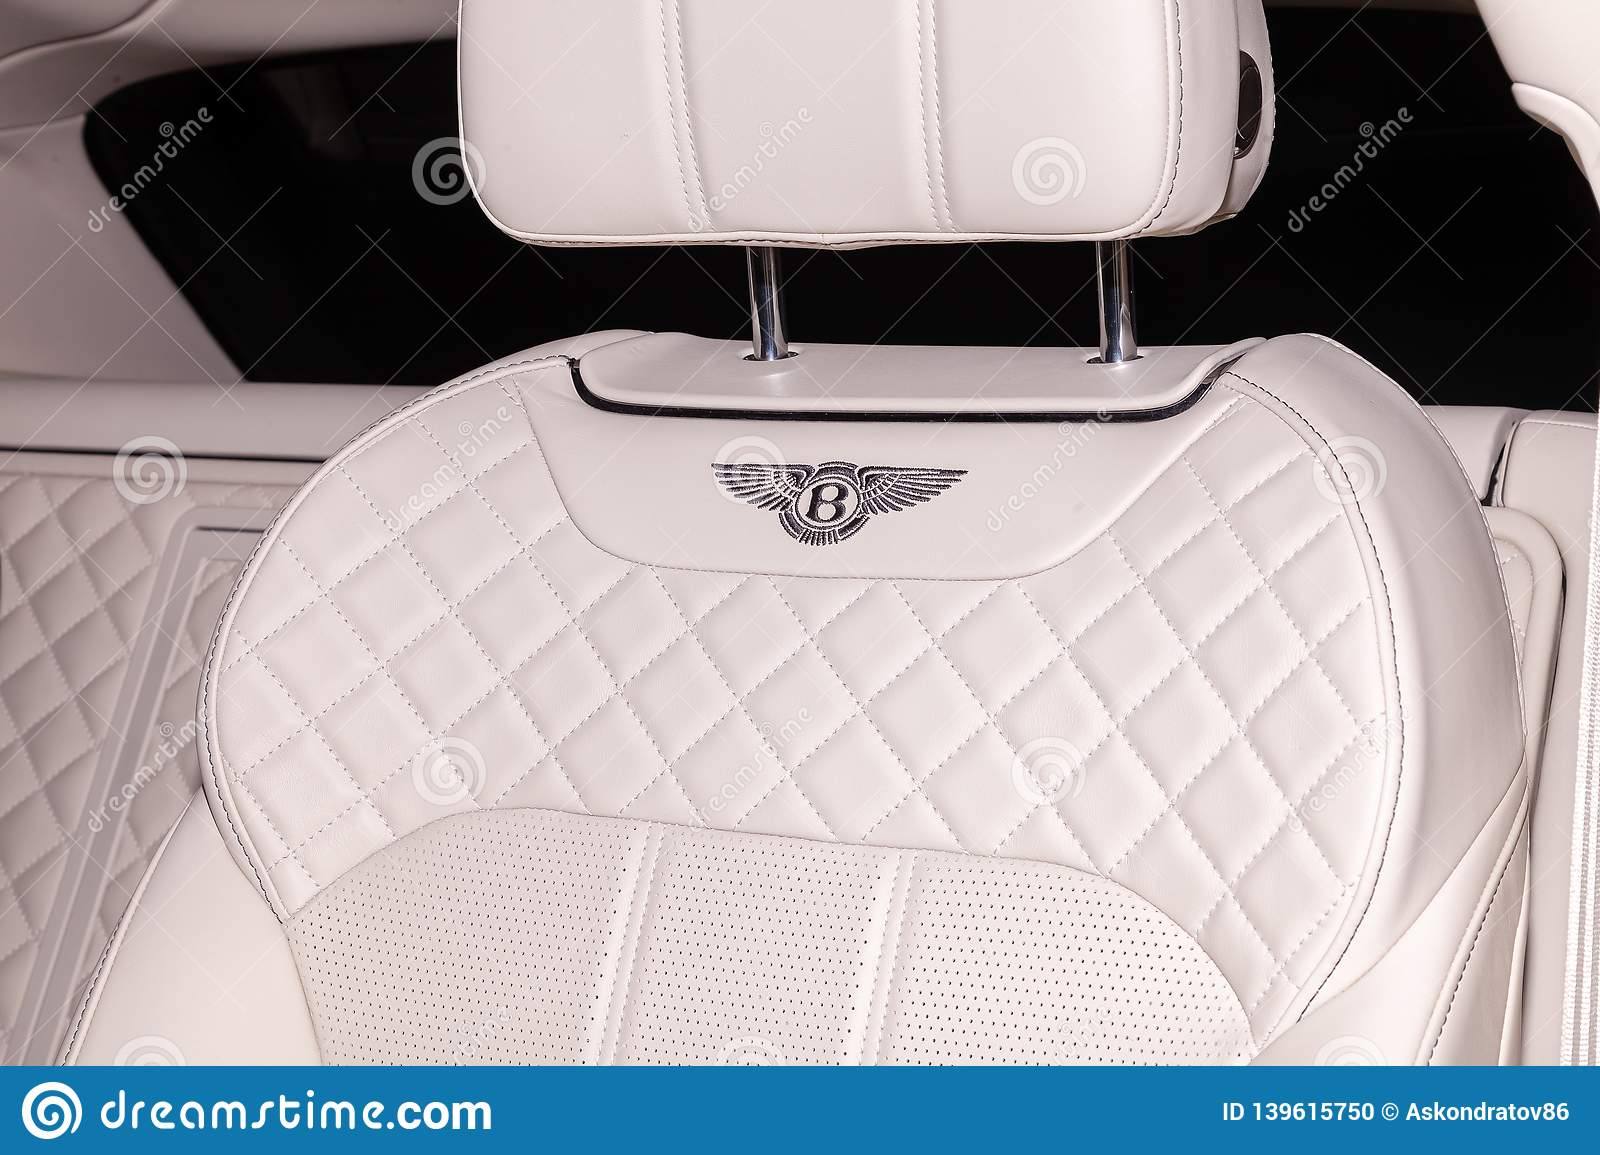 Interior View With Emblem On Rear Seat Of Luxury Very Expensive New Black Bentley Bentayga Car Stands In The Washing Box Waiting Editorial Image Image Of British Driver 139615750